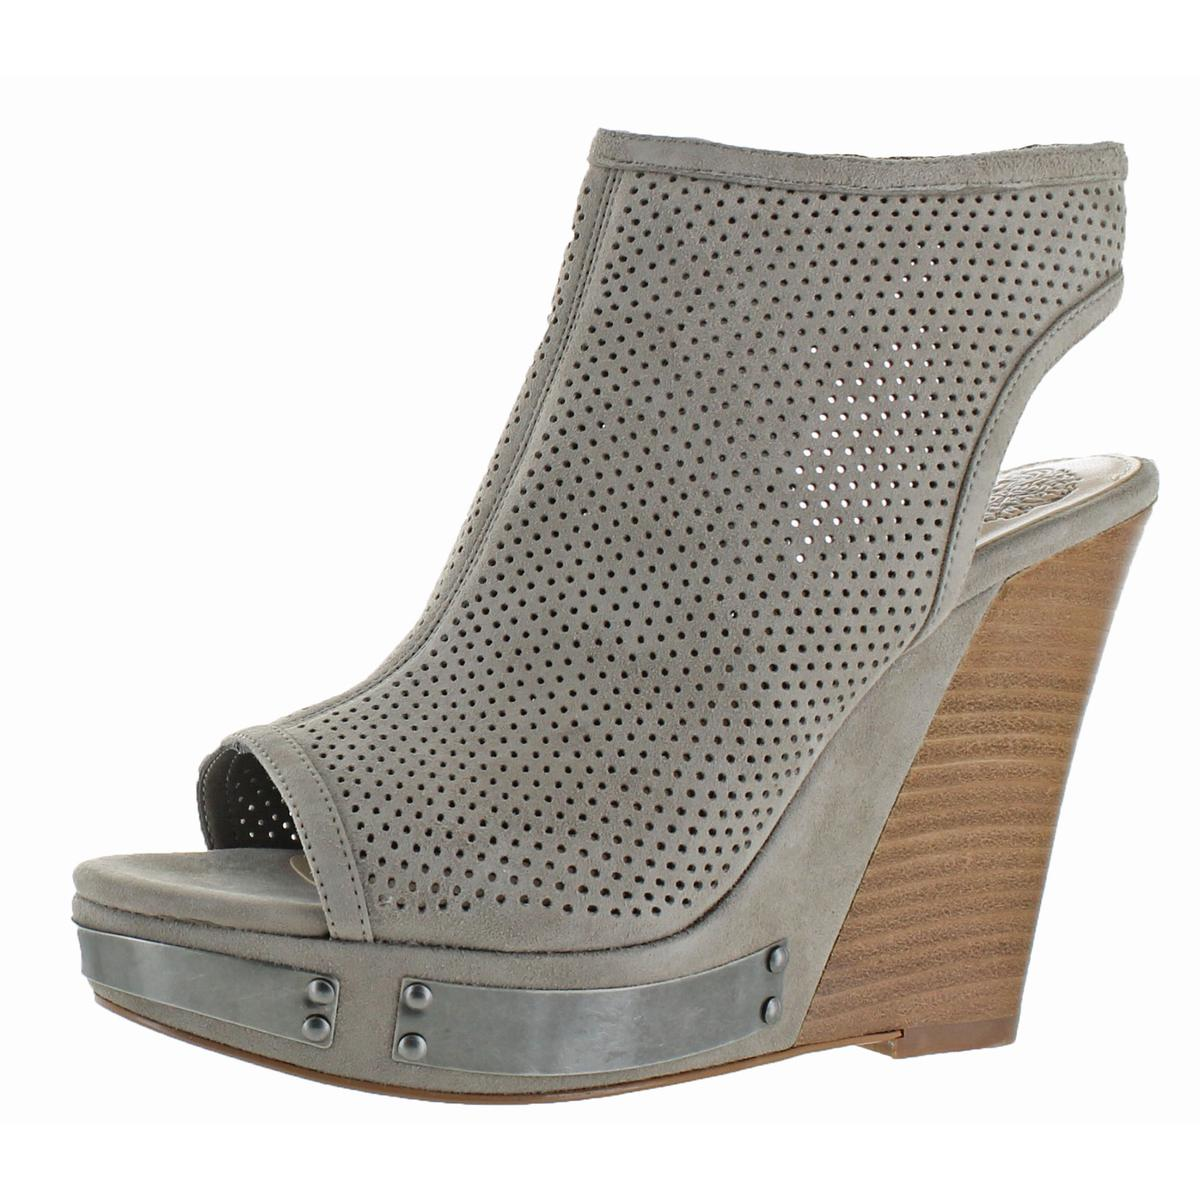 bb2156e3cb9c Details about Vince Camuto Womens Wintana Gray Wedges Shoes 6.5 Medium  (B